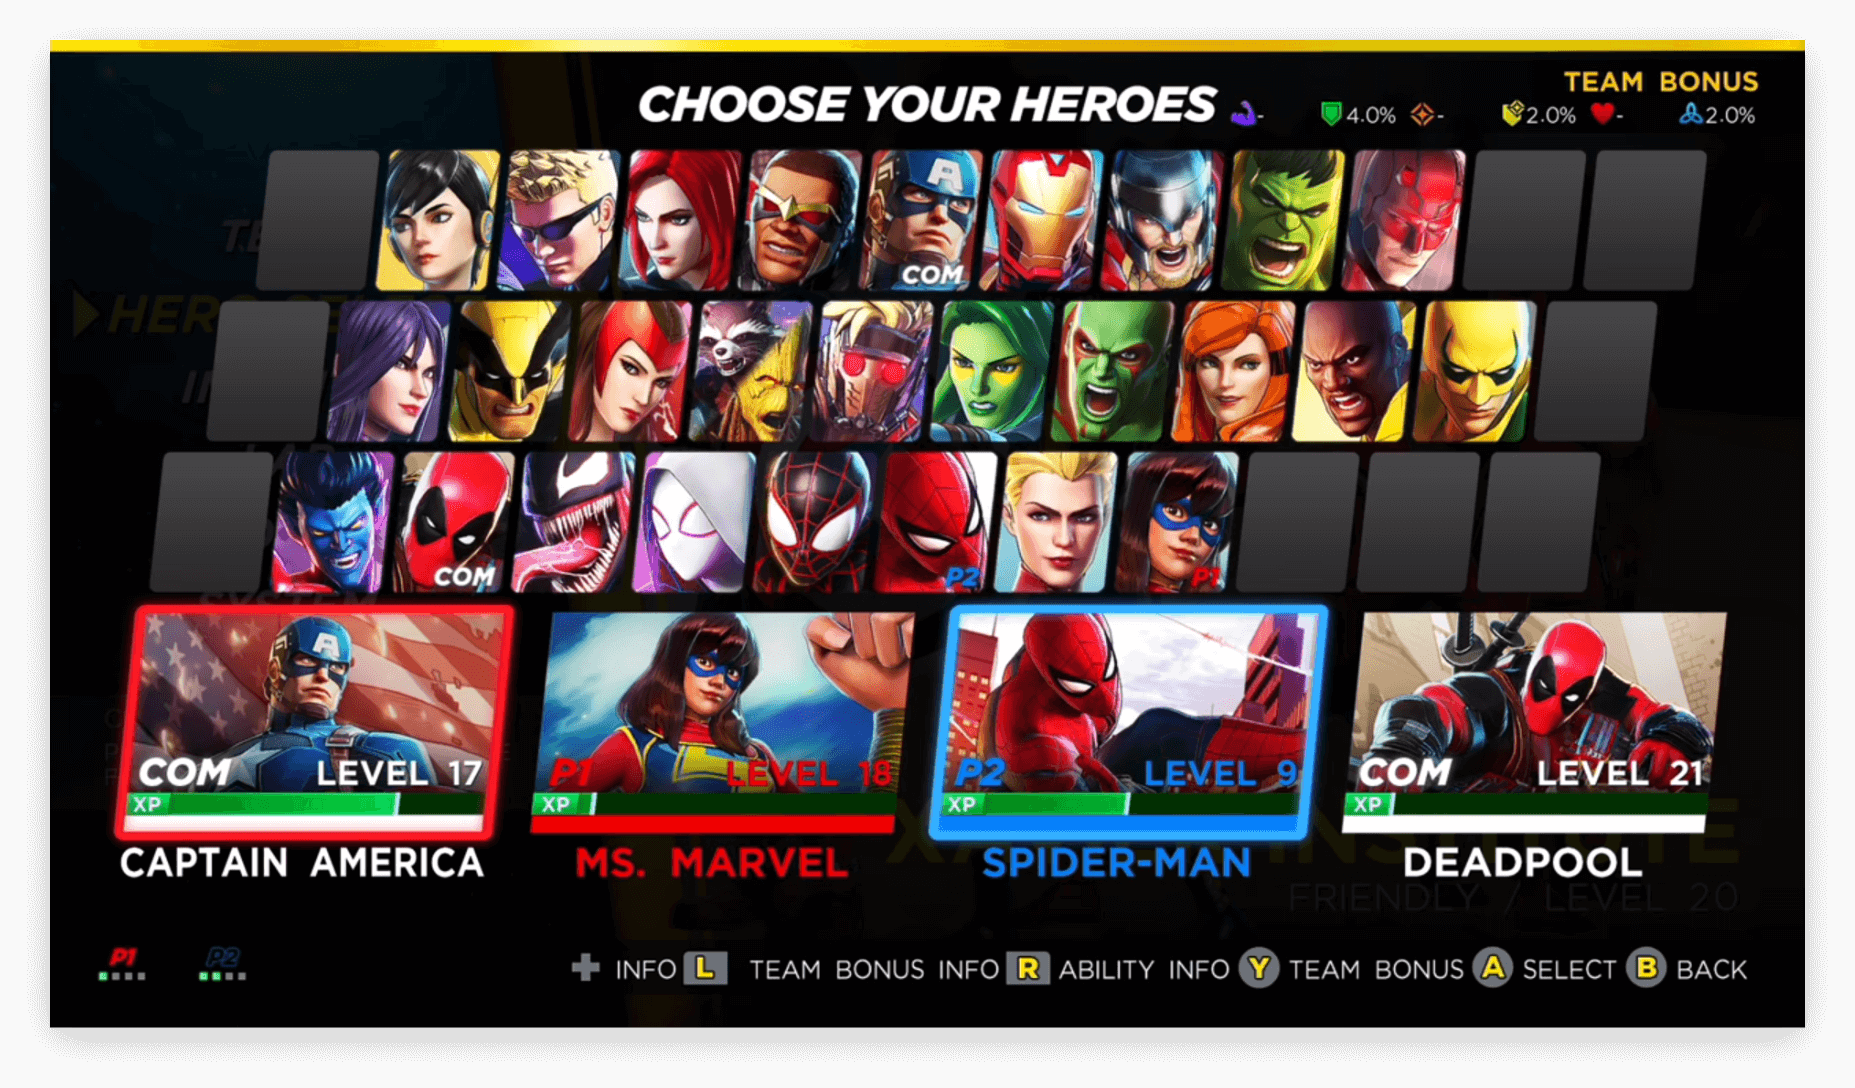 The actual character selection screen that shipped with the game.